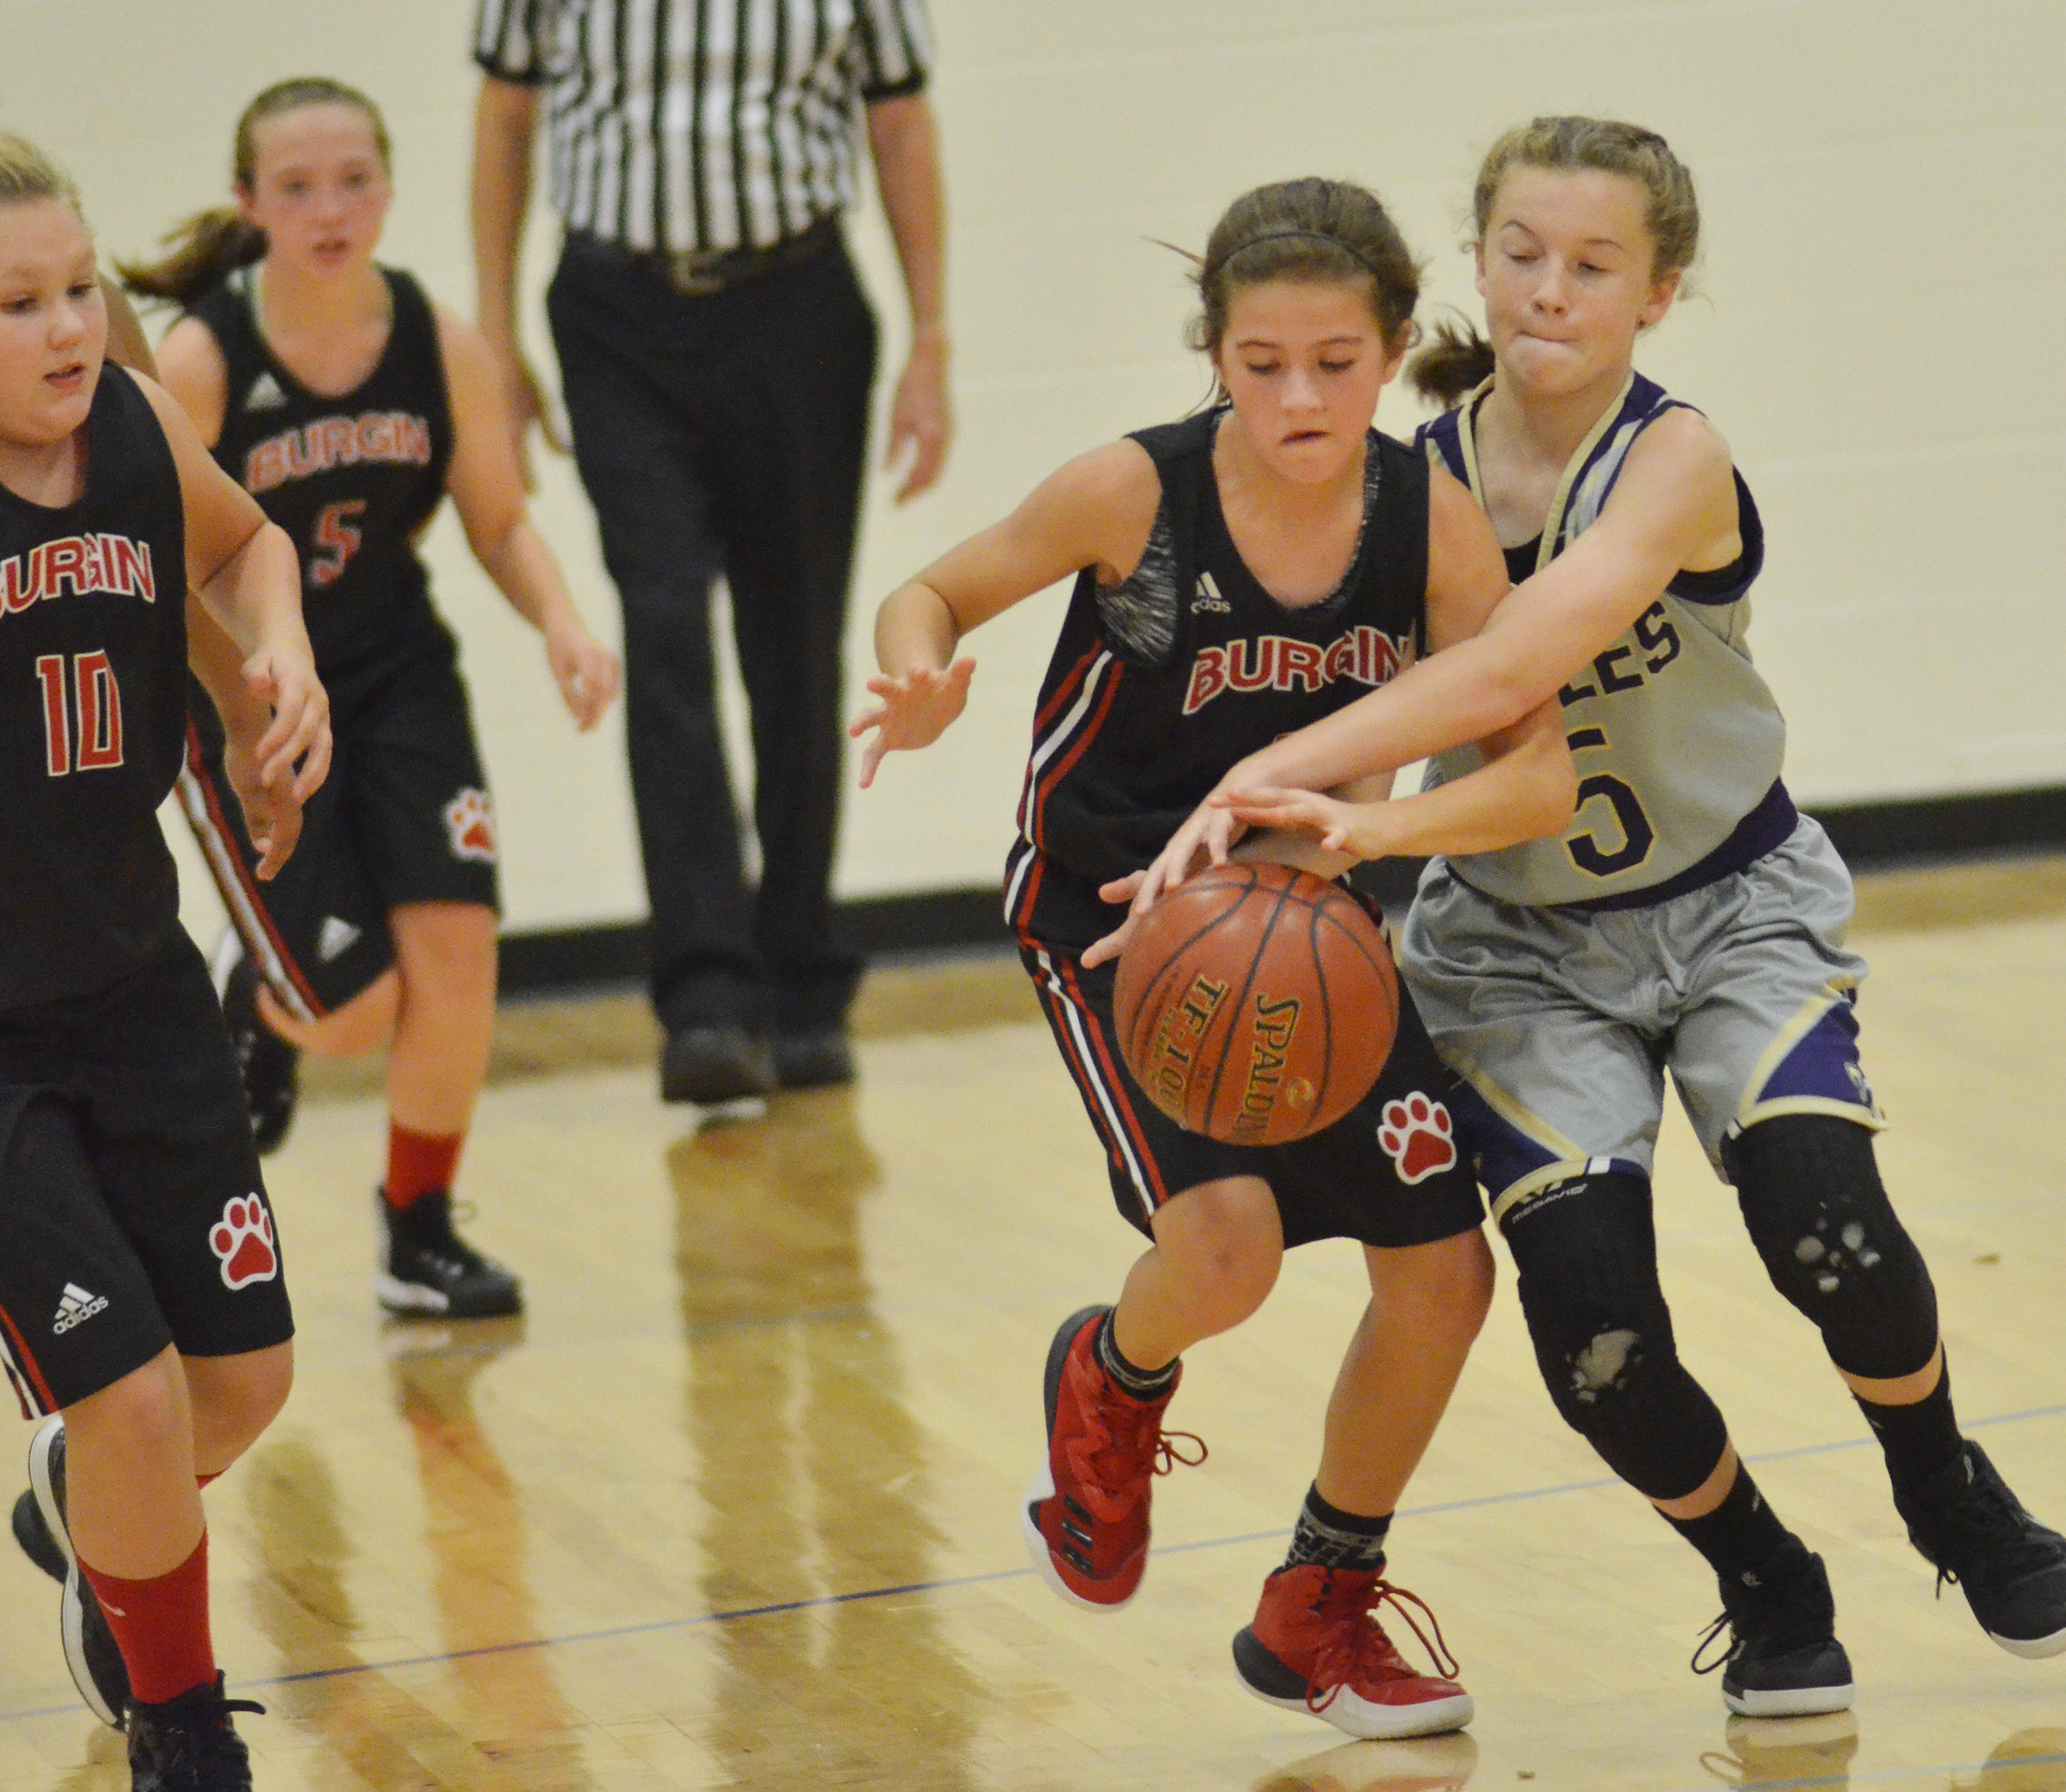 CMS seventh-grader Dakota Slone tries to steal the ball.